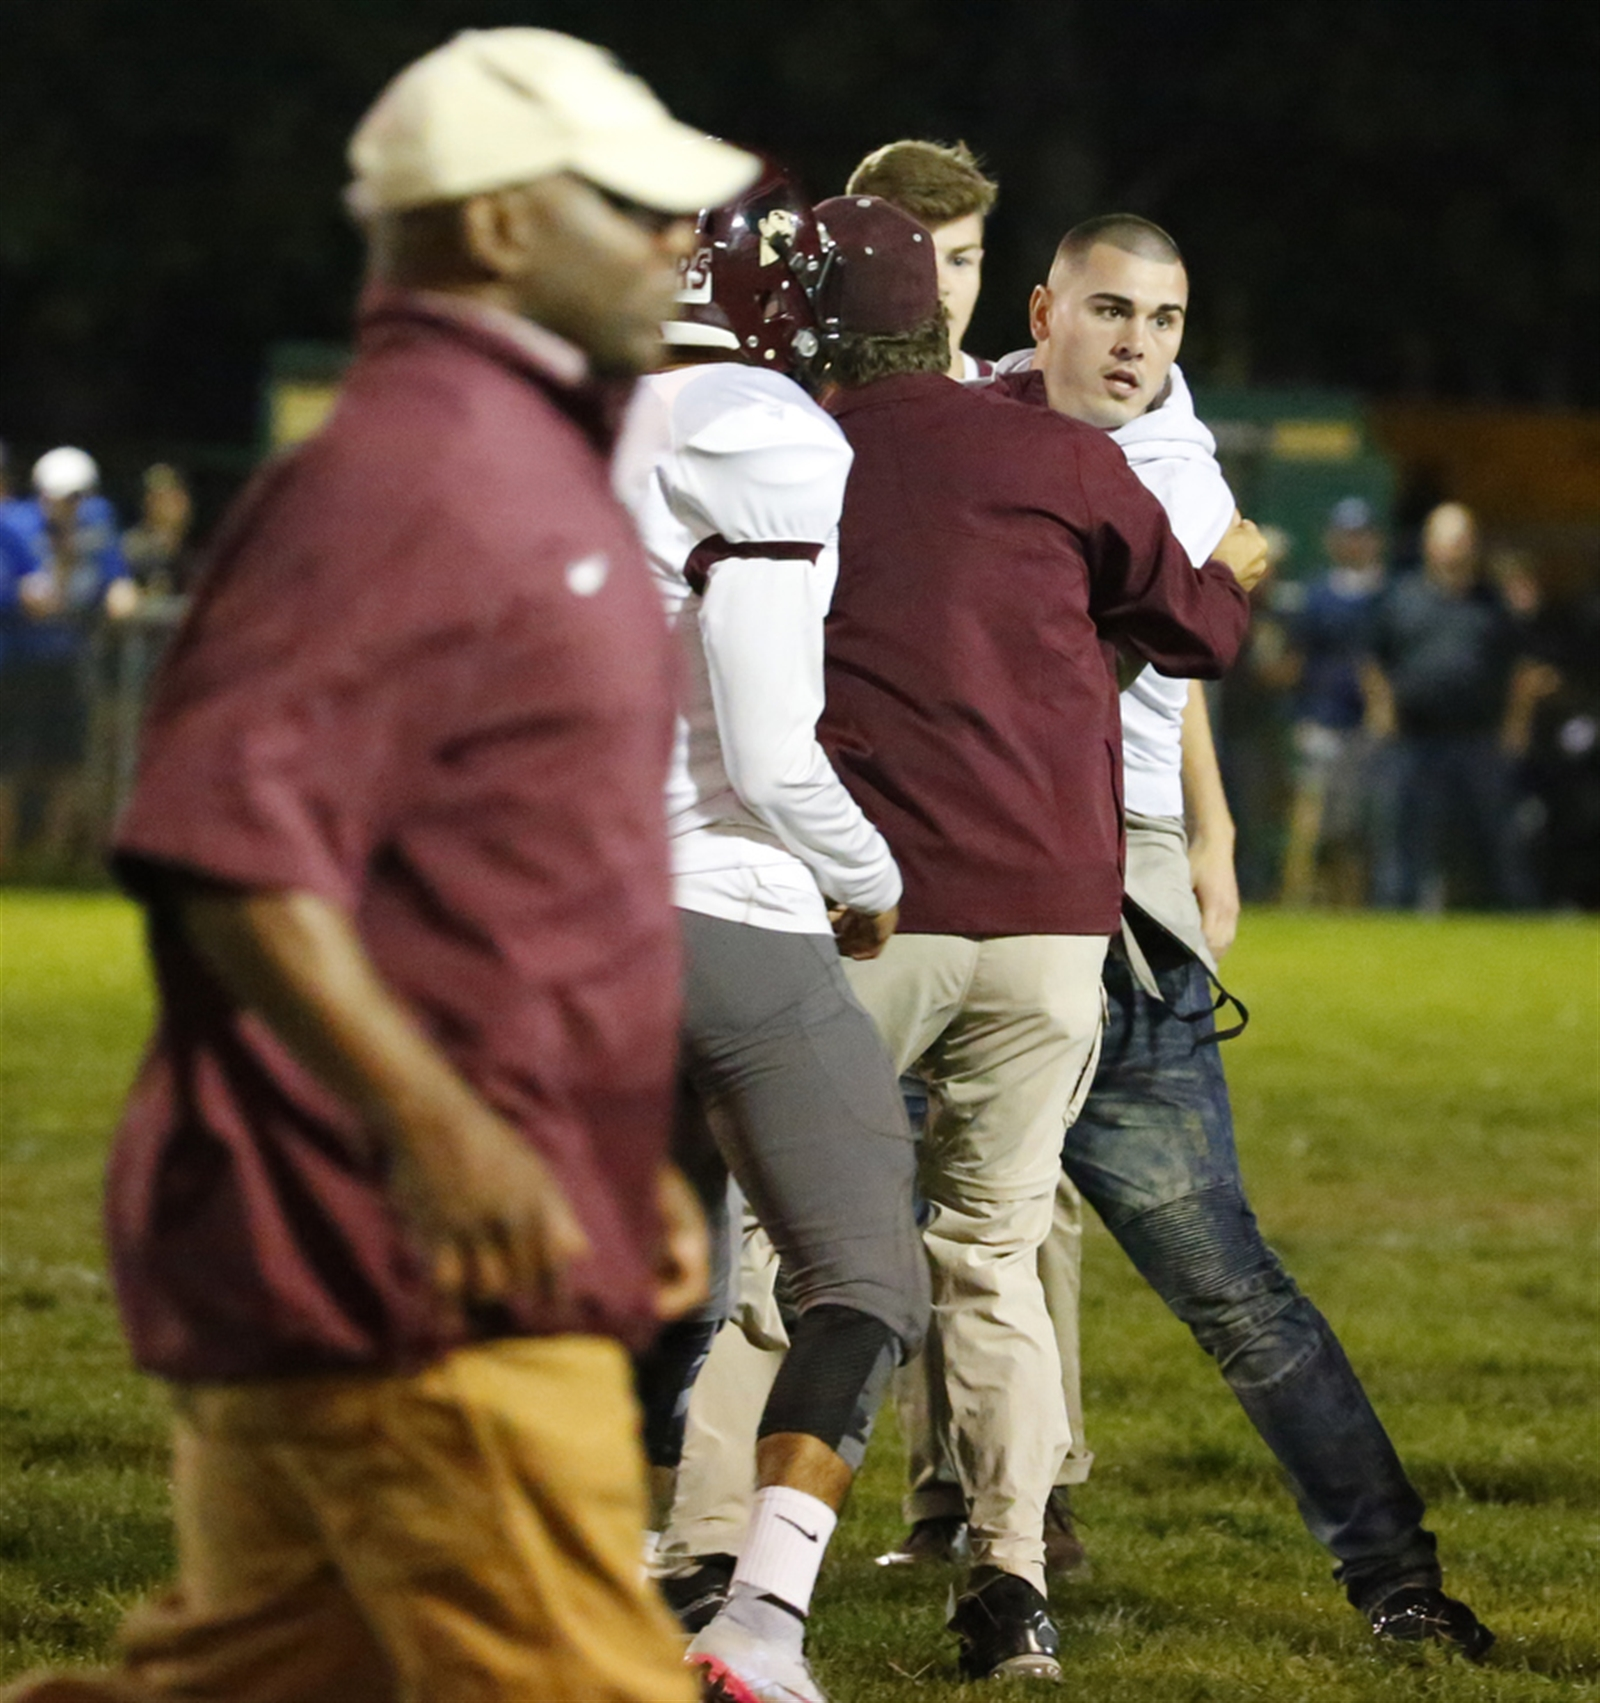 St. Joe's alumni Chad Kelly is restrained after leaving the stands to come to the aid of his brother Casey.